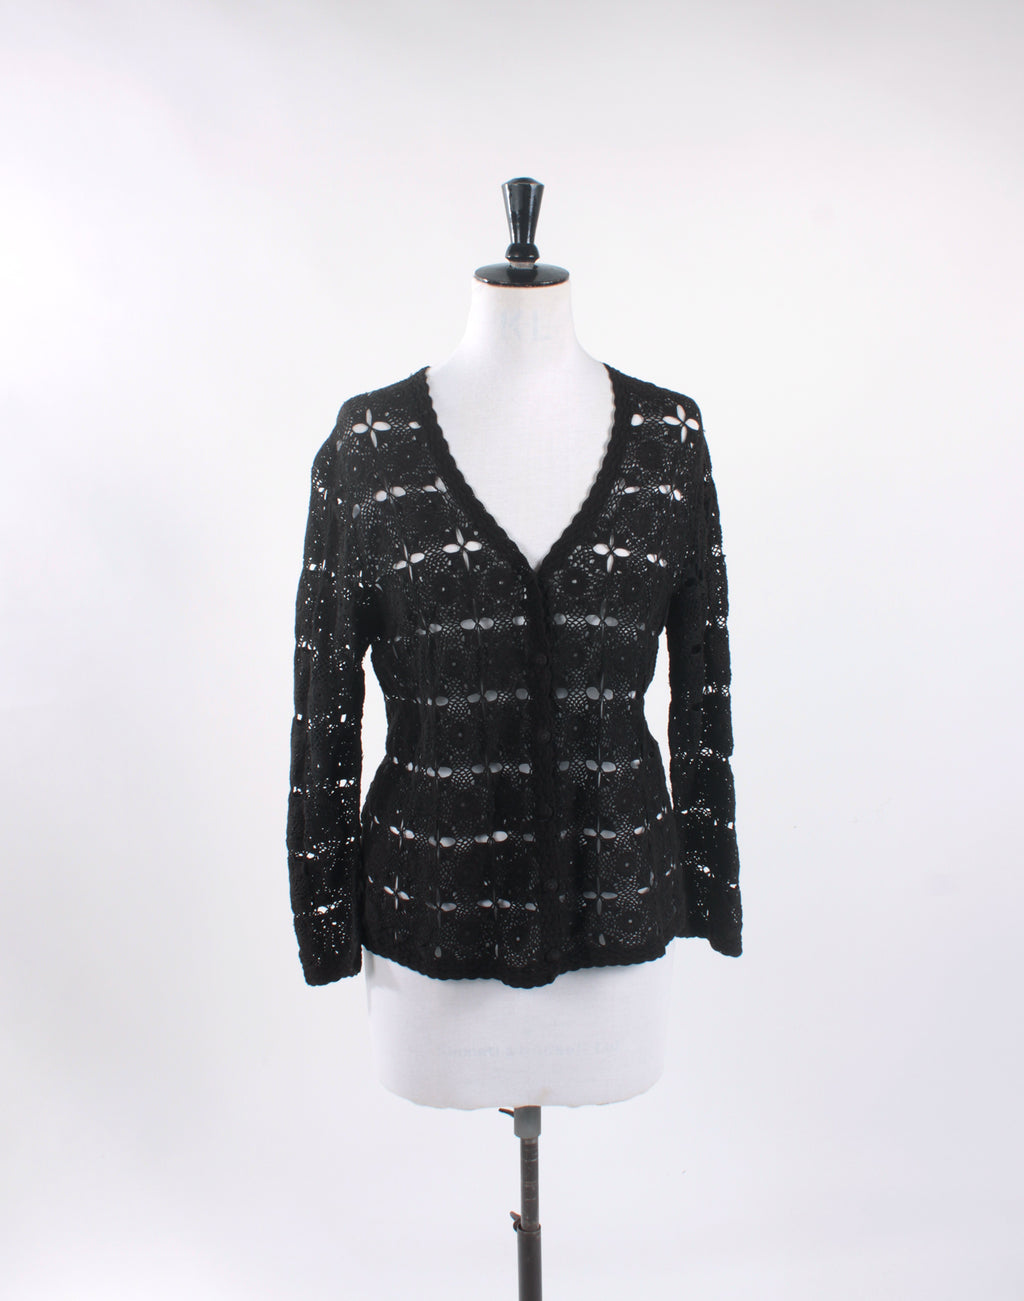 Vintage 60's Black Cotton Lace Cardigan